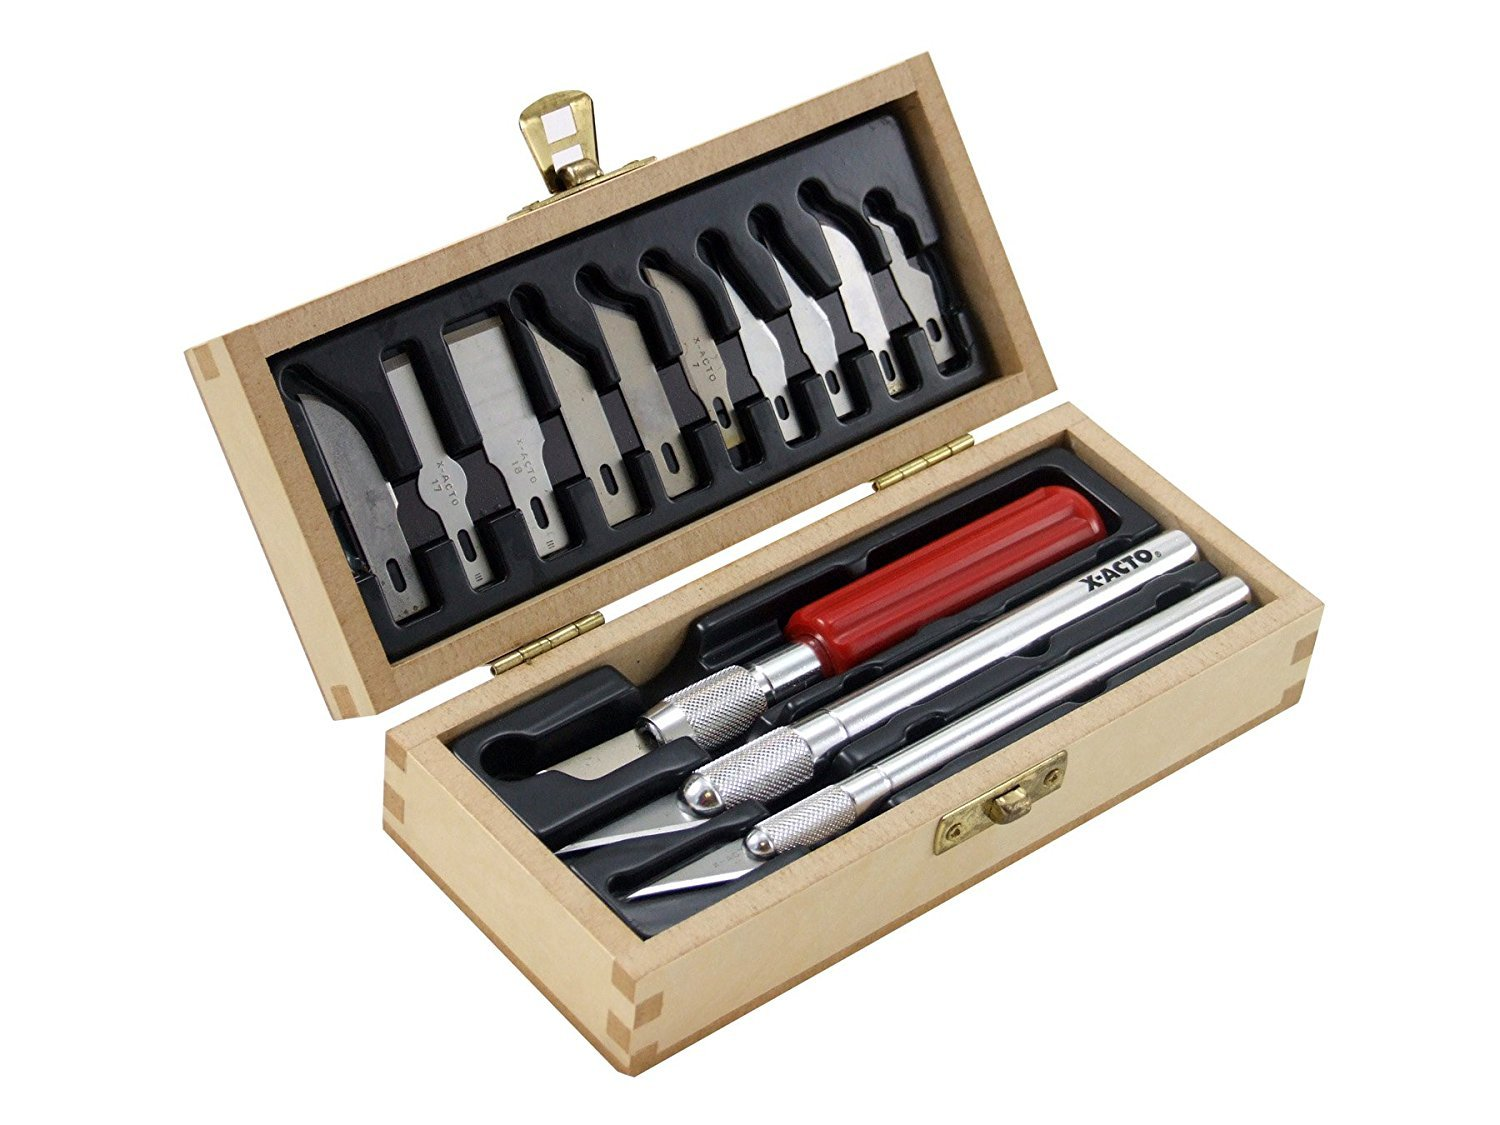 X-Acto Xacto X5282 Basic Knife Set (Original New Version - Limited Edition)